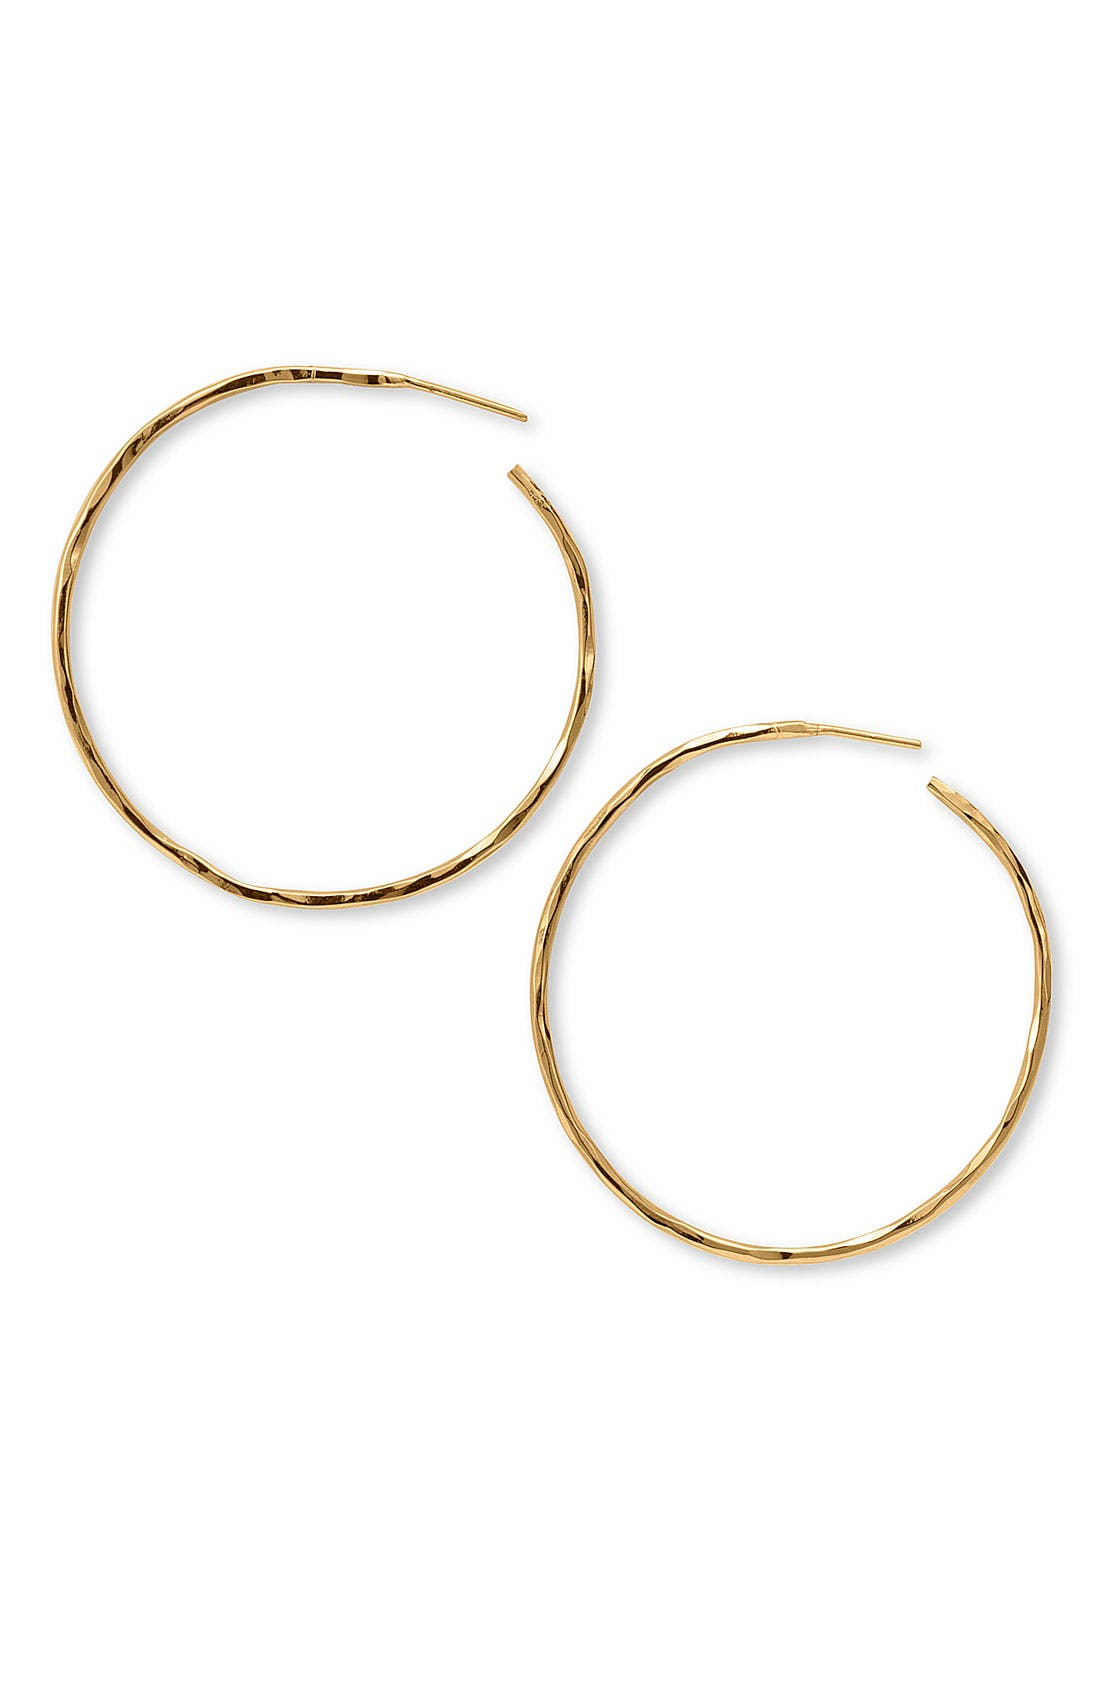 Main Image - Argento Vivo Hammered Large Hoop Earrings